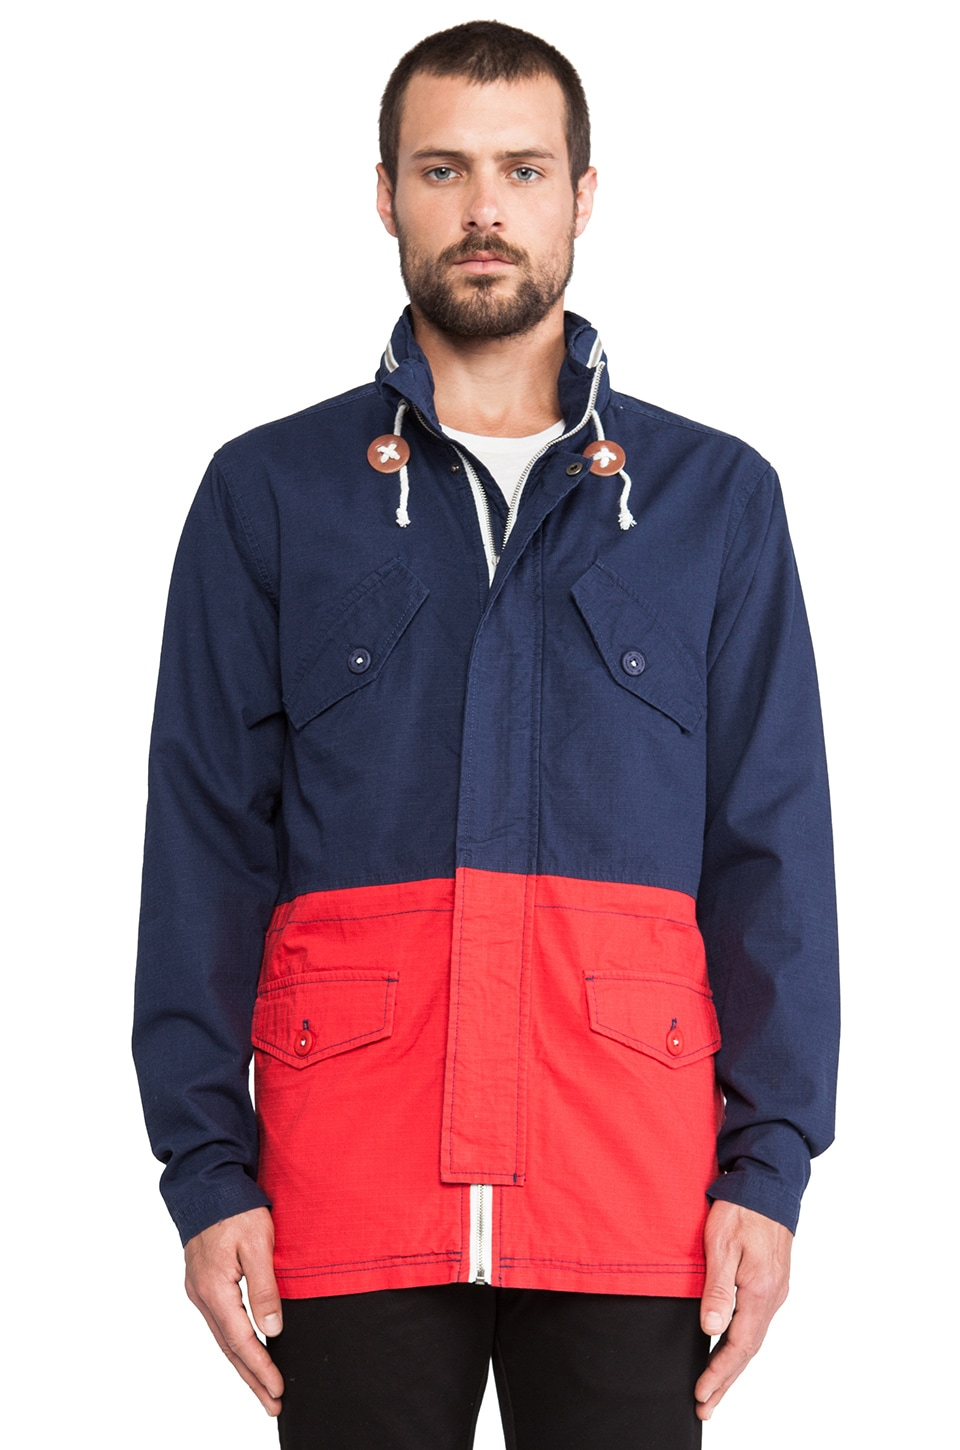 Nixon Pi Jacket in Faded Navy & Red